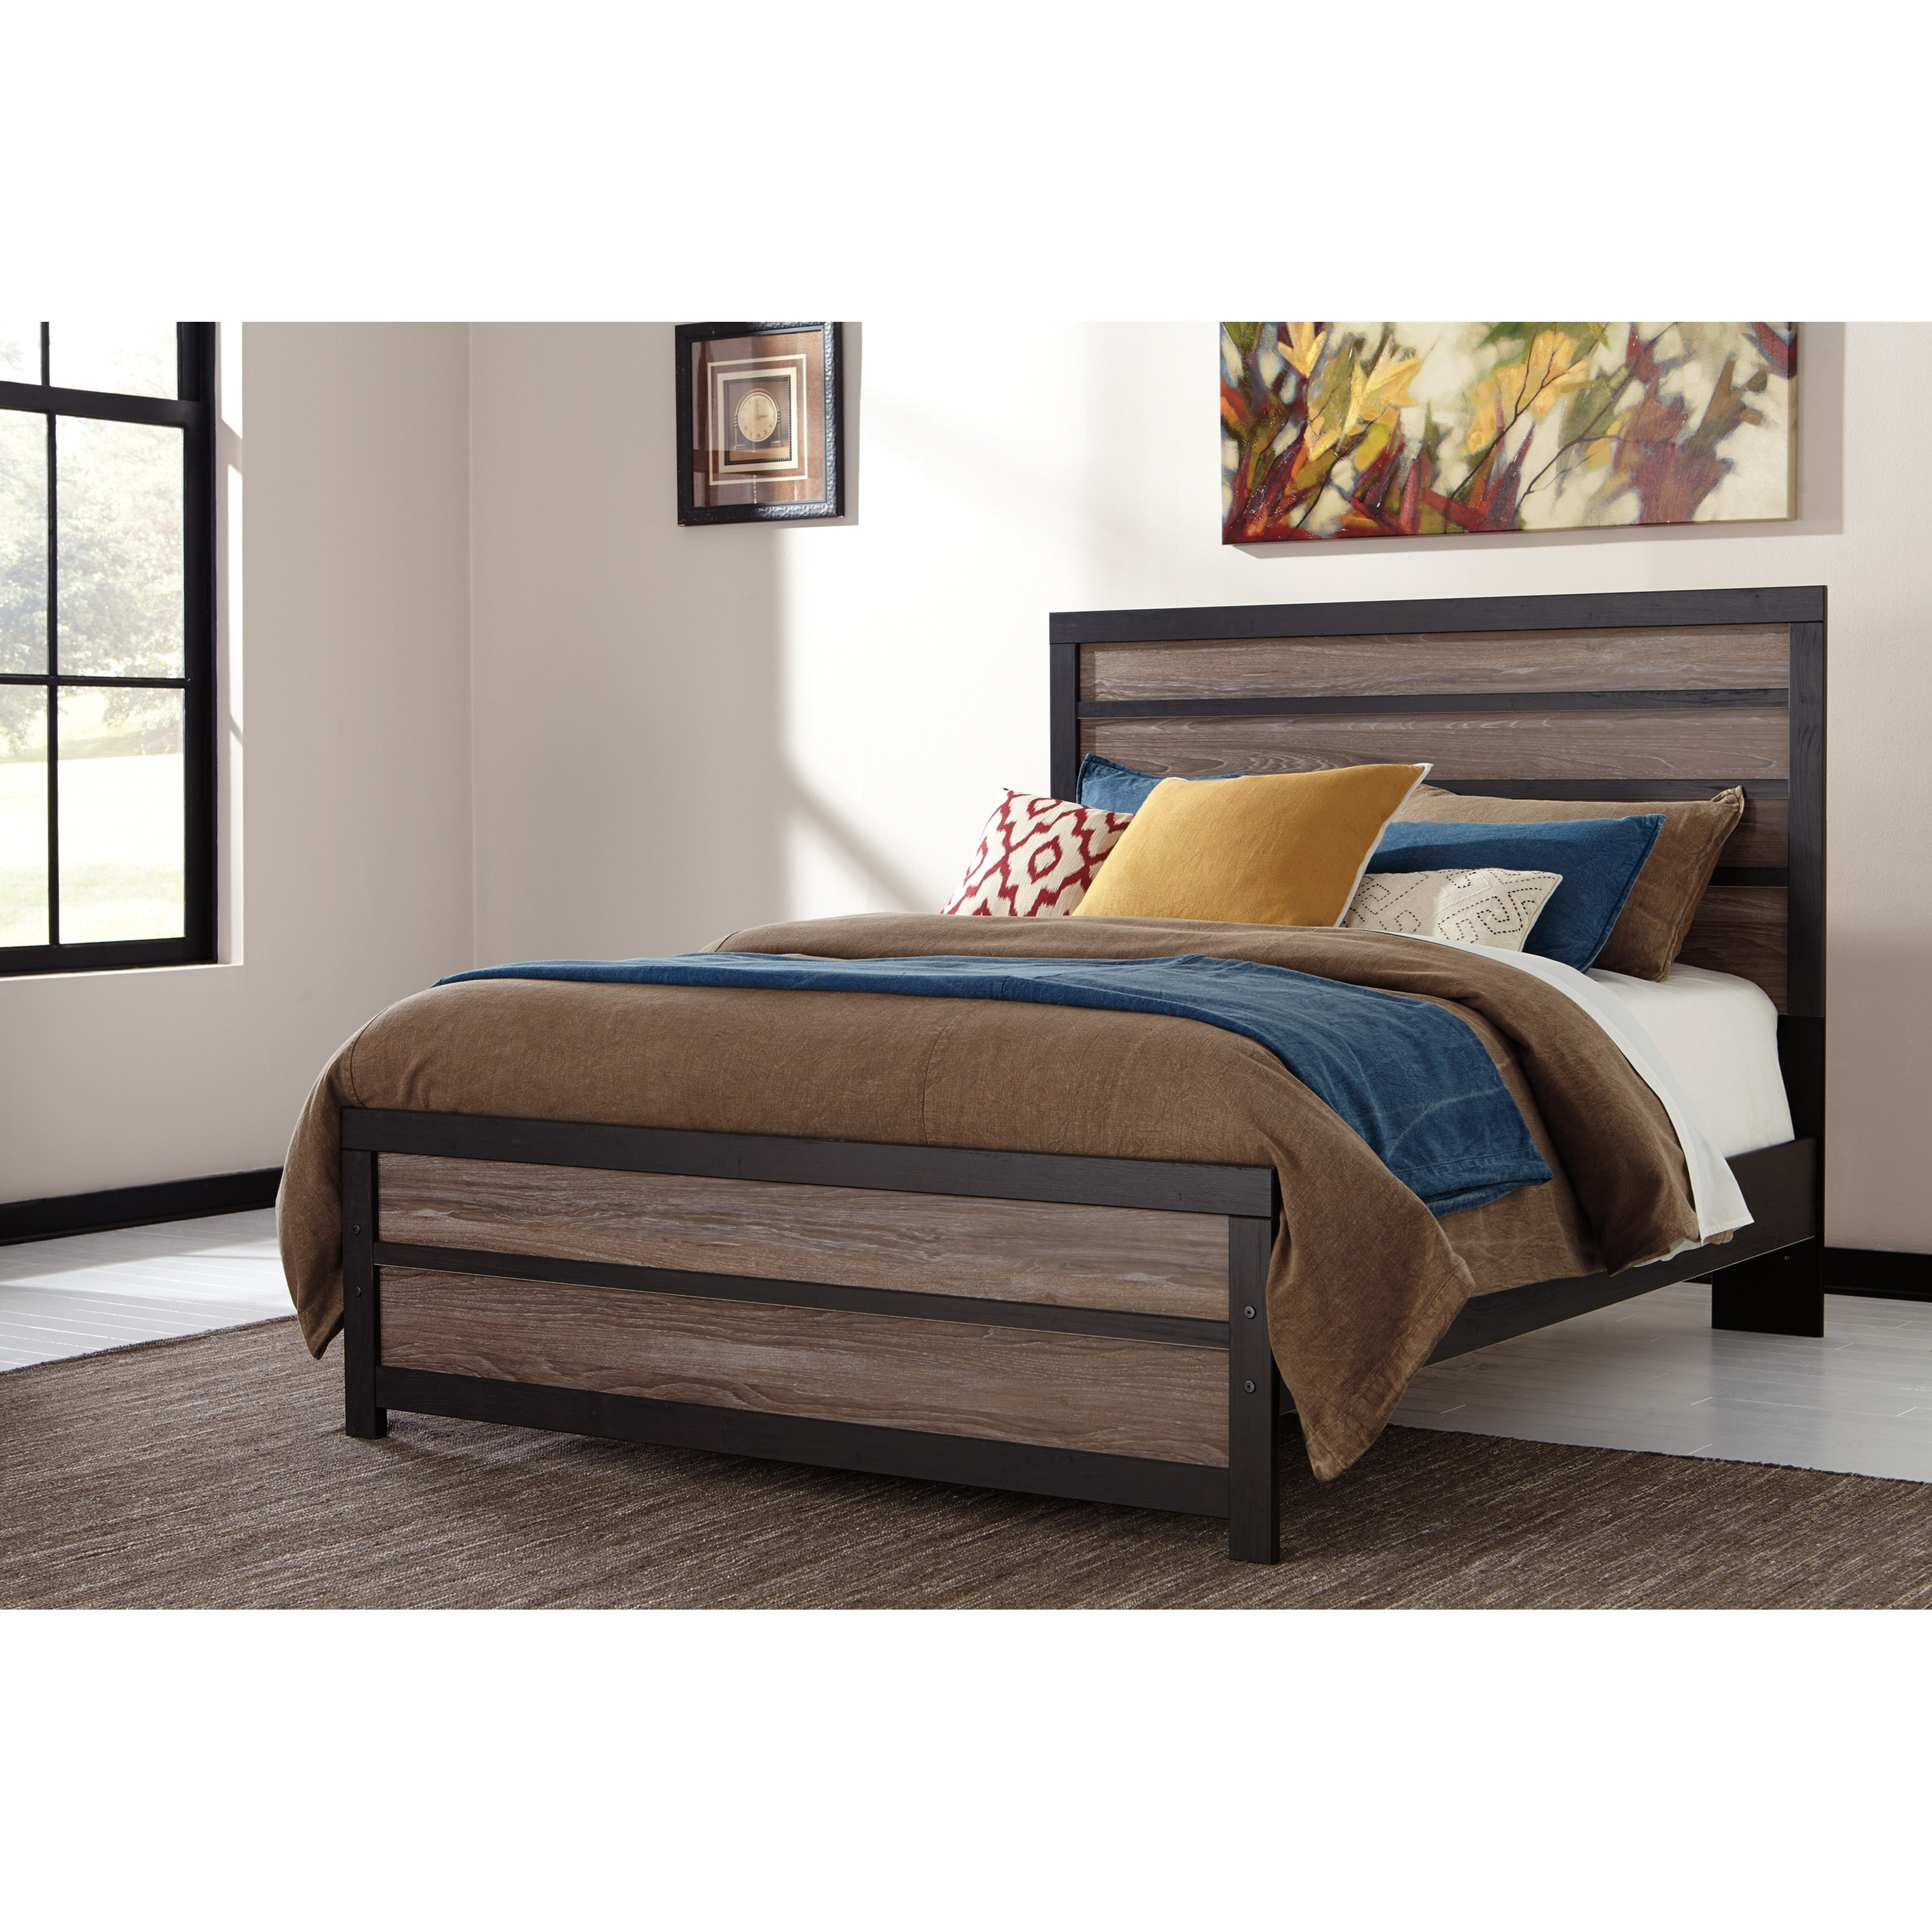 Bed Queen Harrington Rustic Queen Panel Bed With Two Tone Plank Look By Signature Design By Ashley At Rotmans